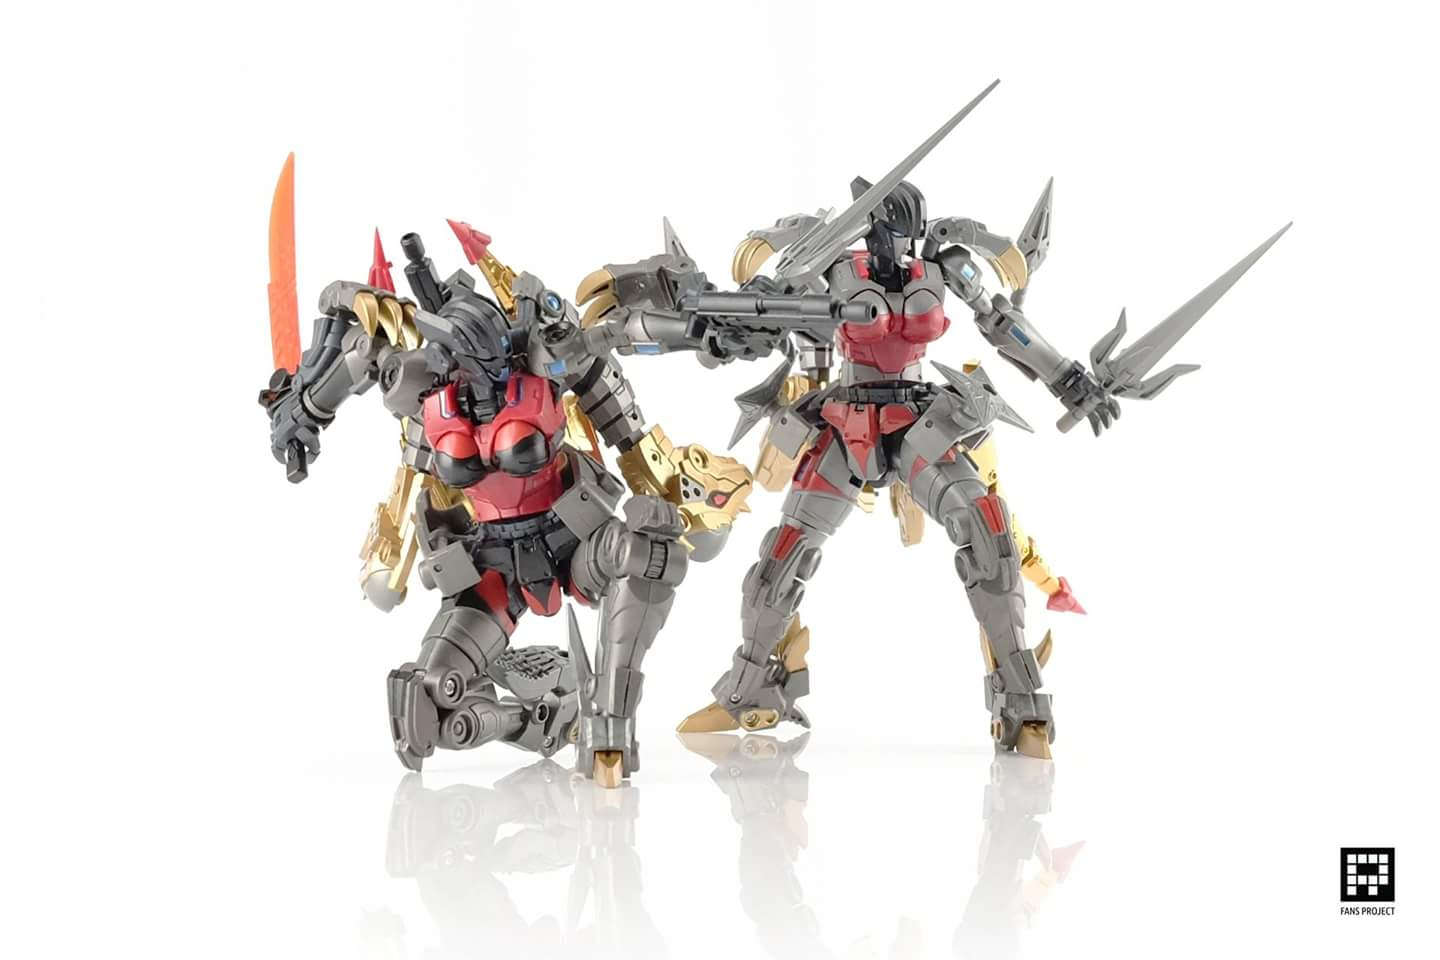 [FansProject] Produit Tiers - Jouets LER (Lost Exo Realm) - aka Dinobots - Page 3 L0eX5f0M